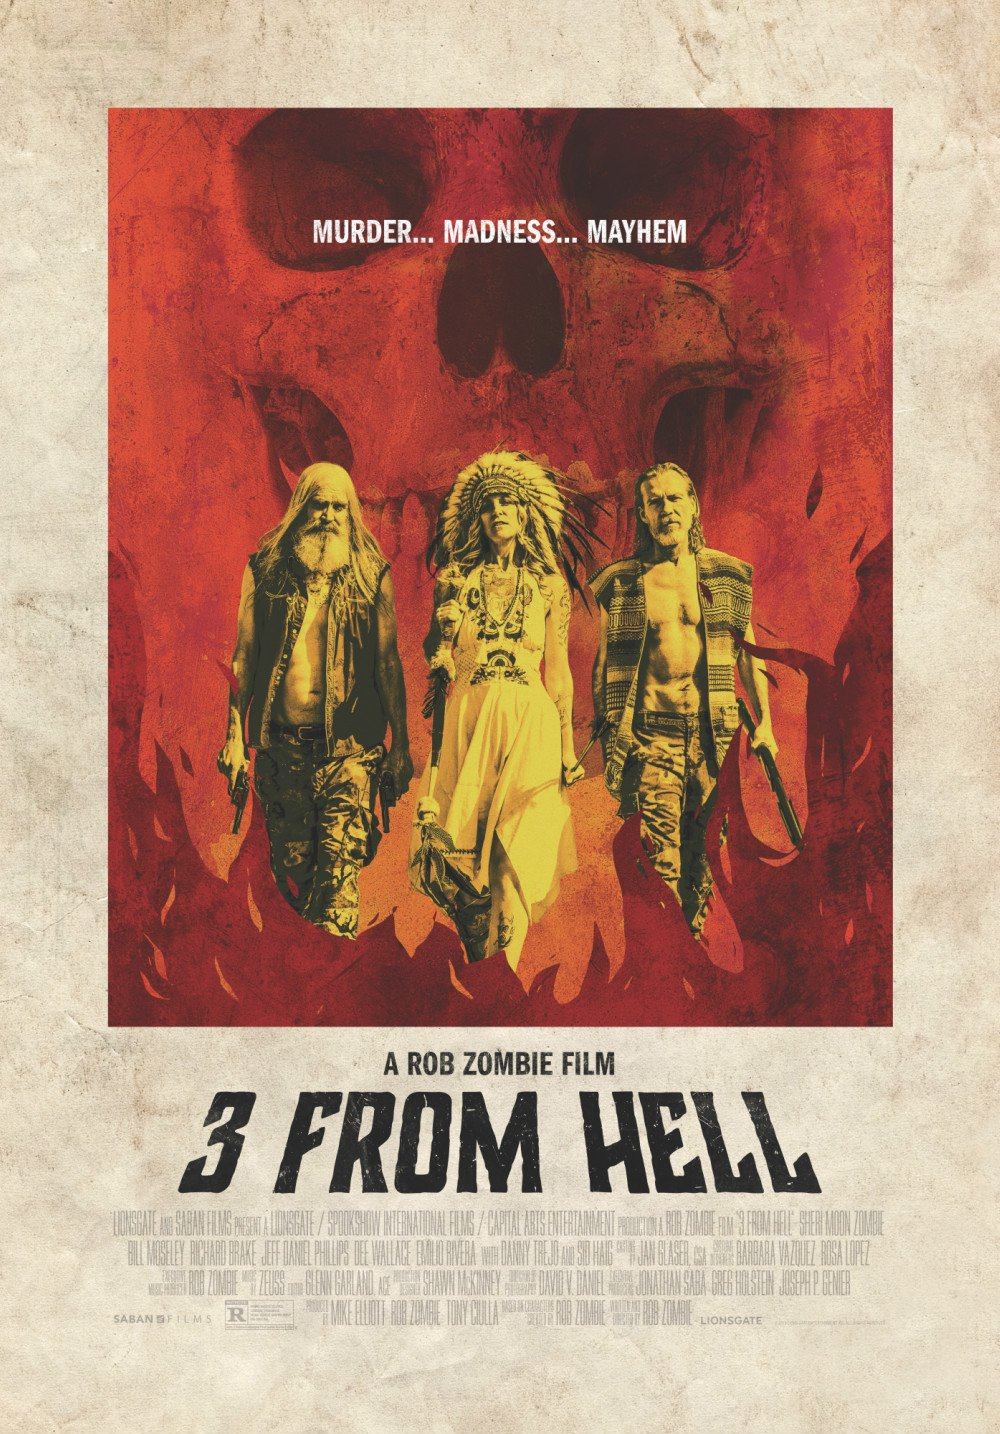 The Devils Rejects Get A New Member On This 3 From Hell Poster